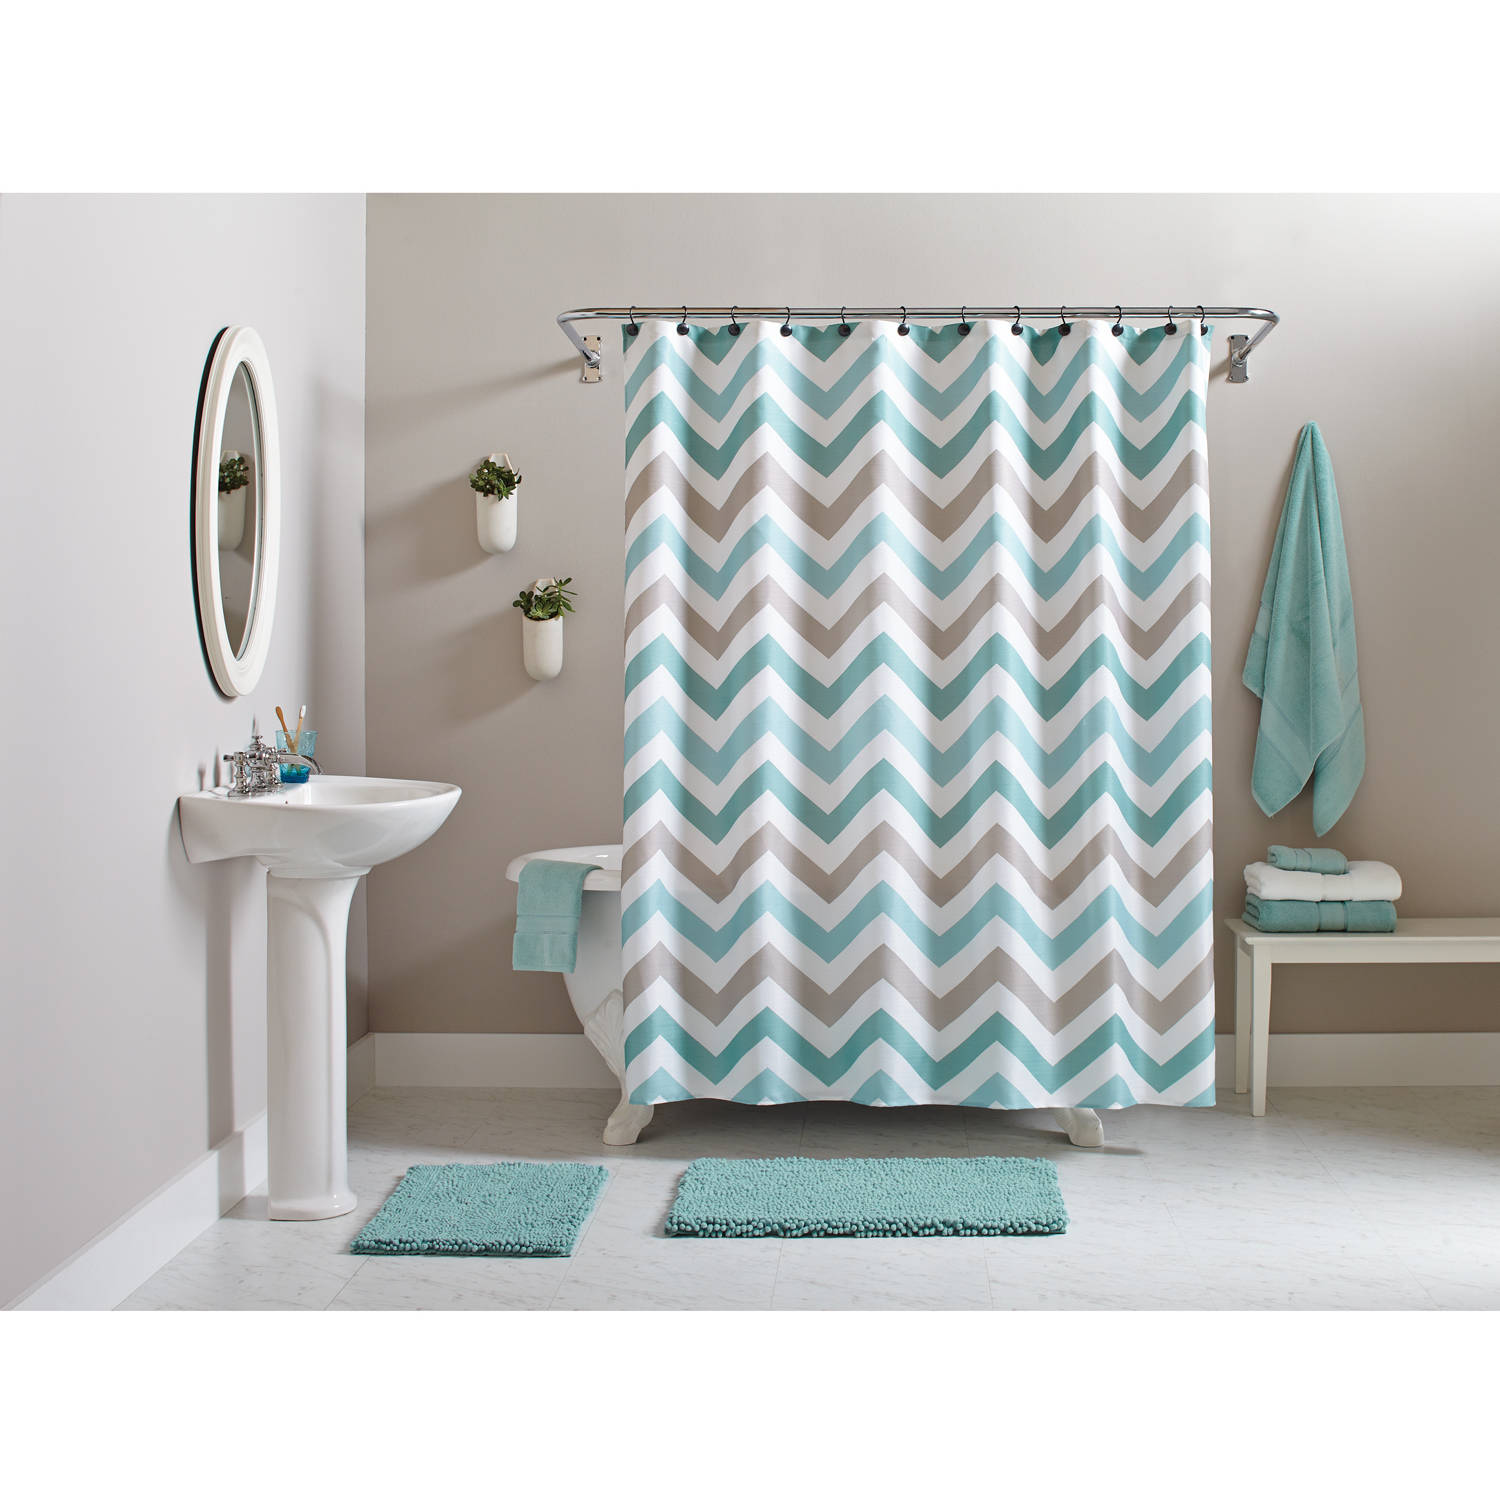 Chevron bathroom sets with shower curtain and rugs - Better Homes And Gardens Chevron 15 Piece Bath Set Teal Brown Walmart Com